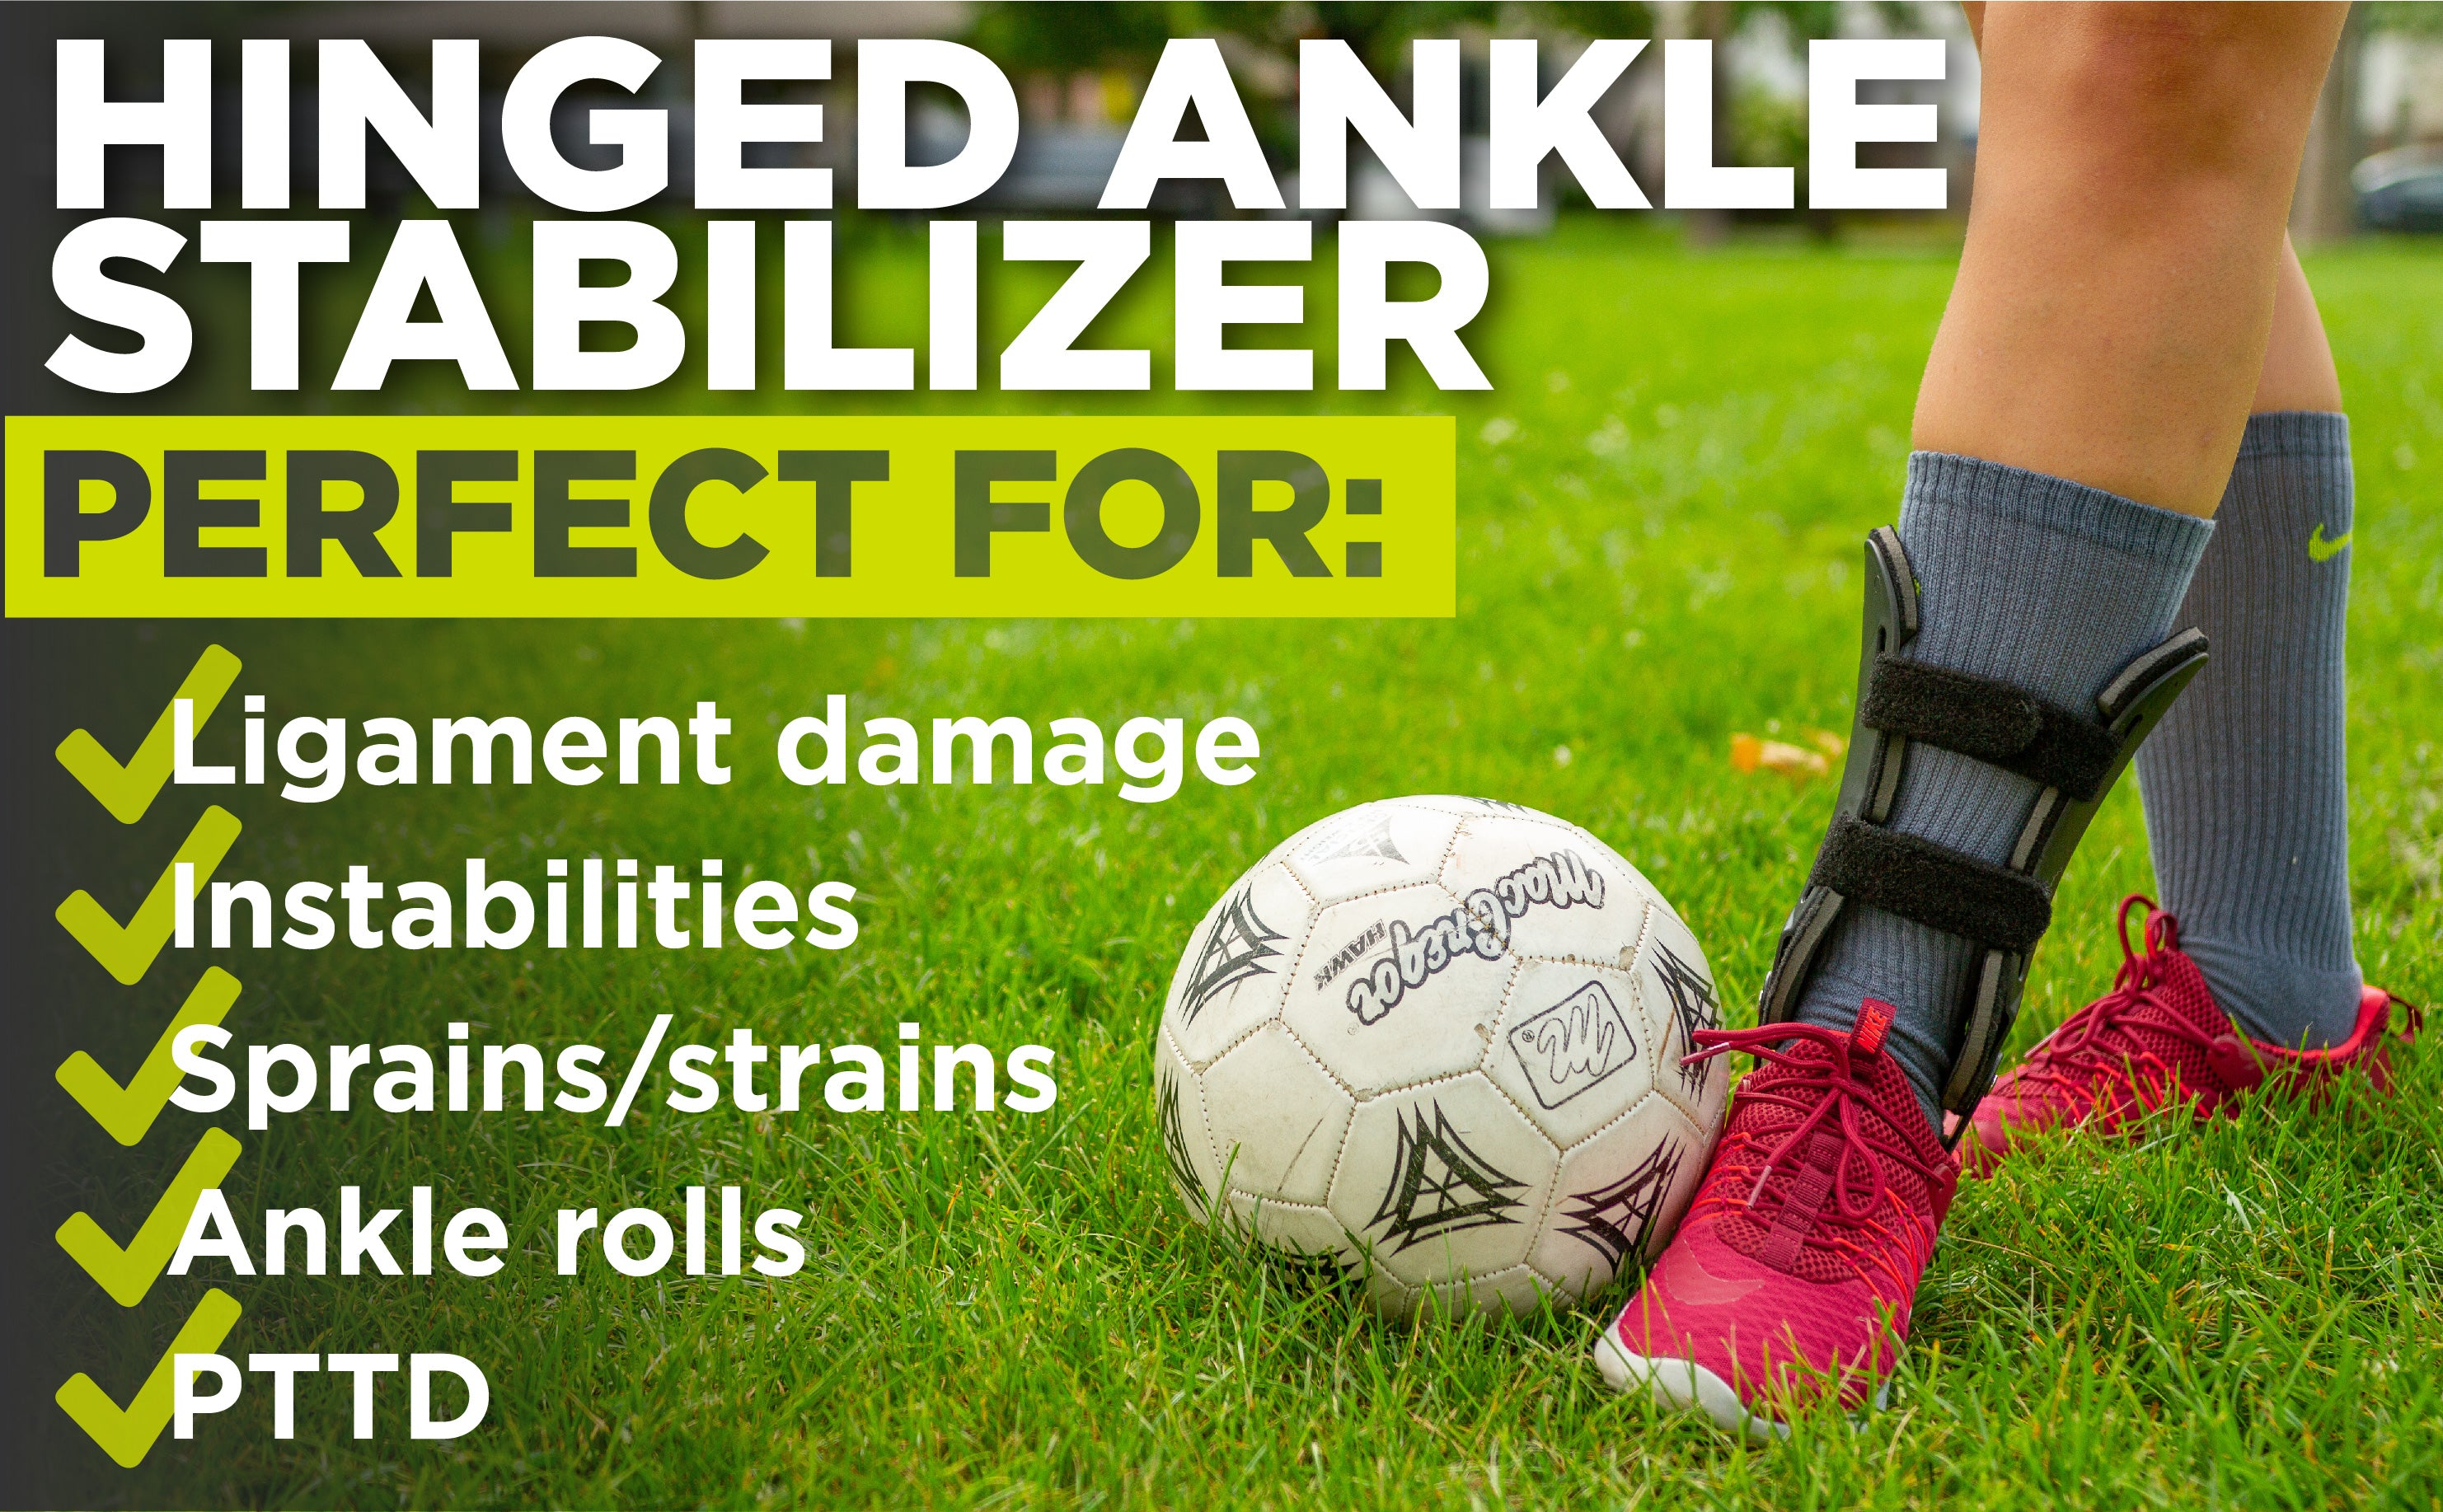 our hinged ankle stabilizer is perfect for ligament damage, instabilities, sprains, and strains